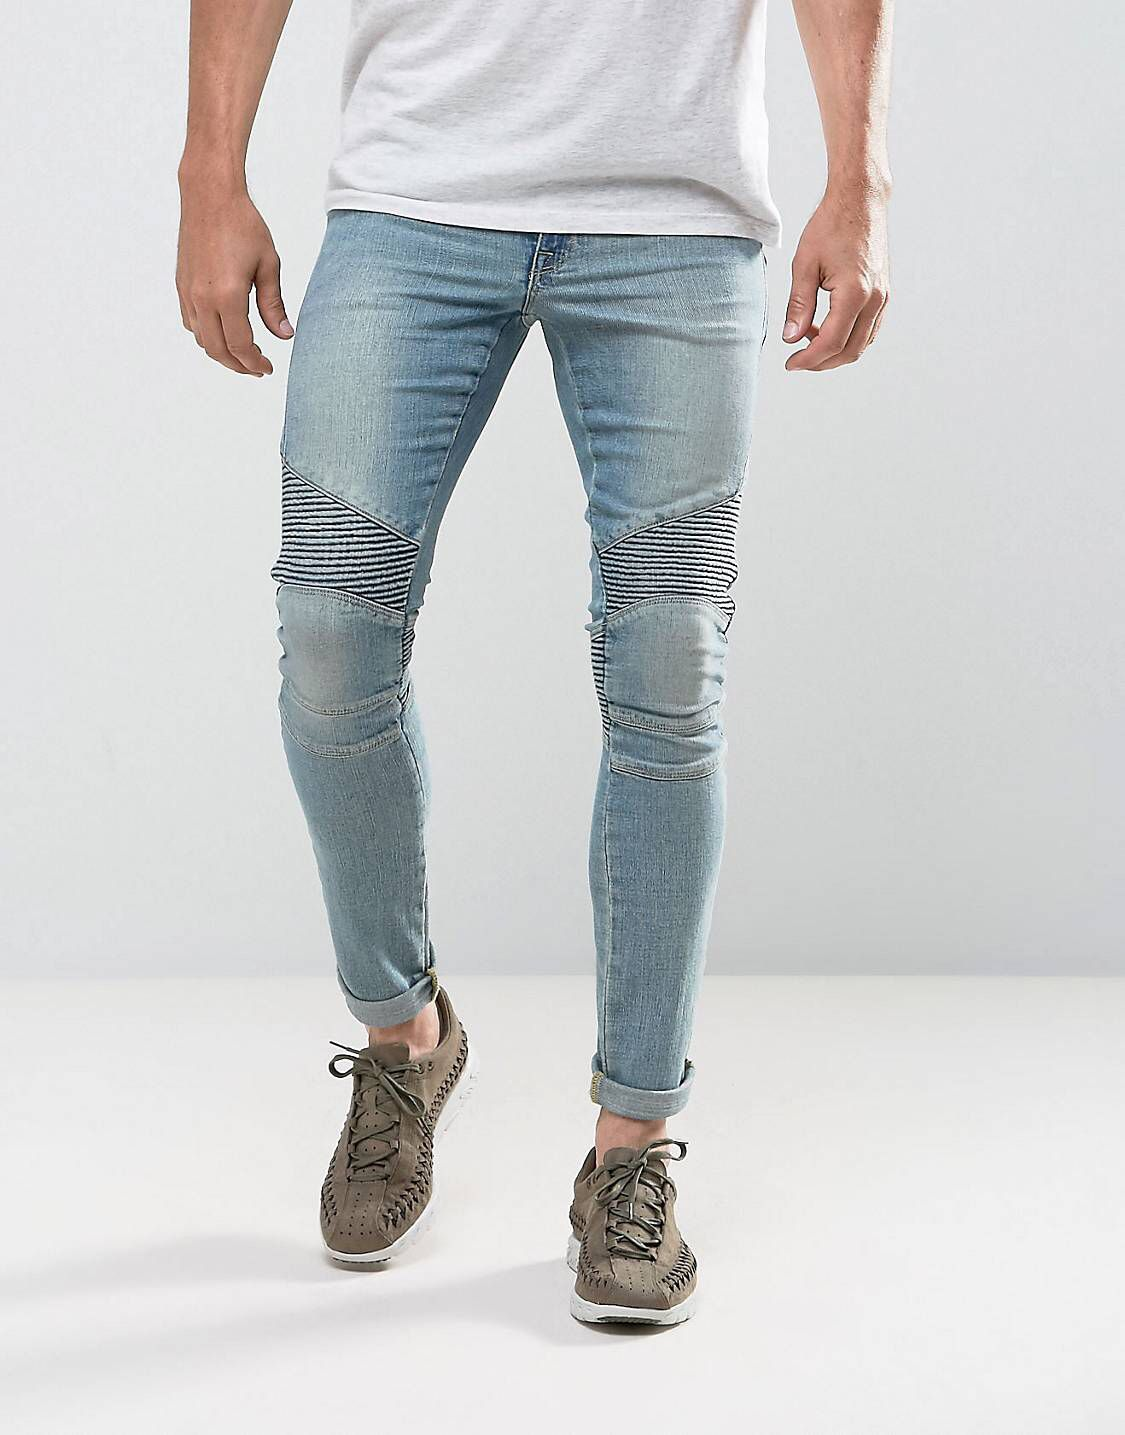 0f9ee977 Buy Navy Asos Skinny jeans for men at best price. Compare Jeans prices from  online stores like Asos - Wossel Global